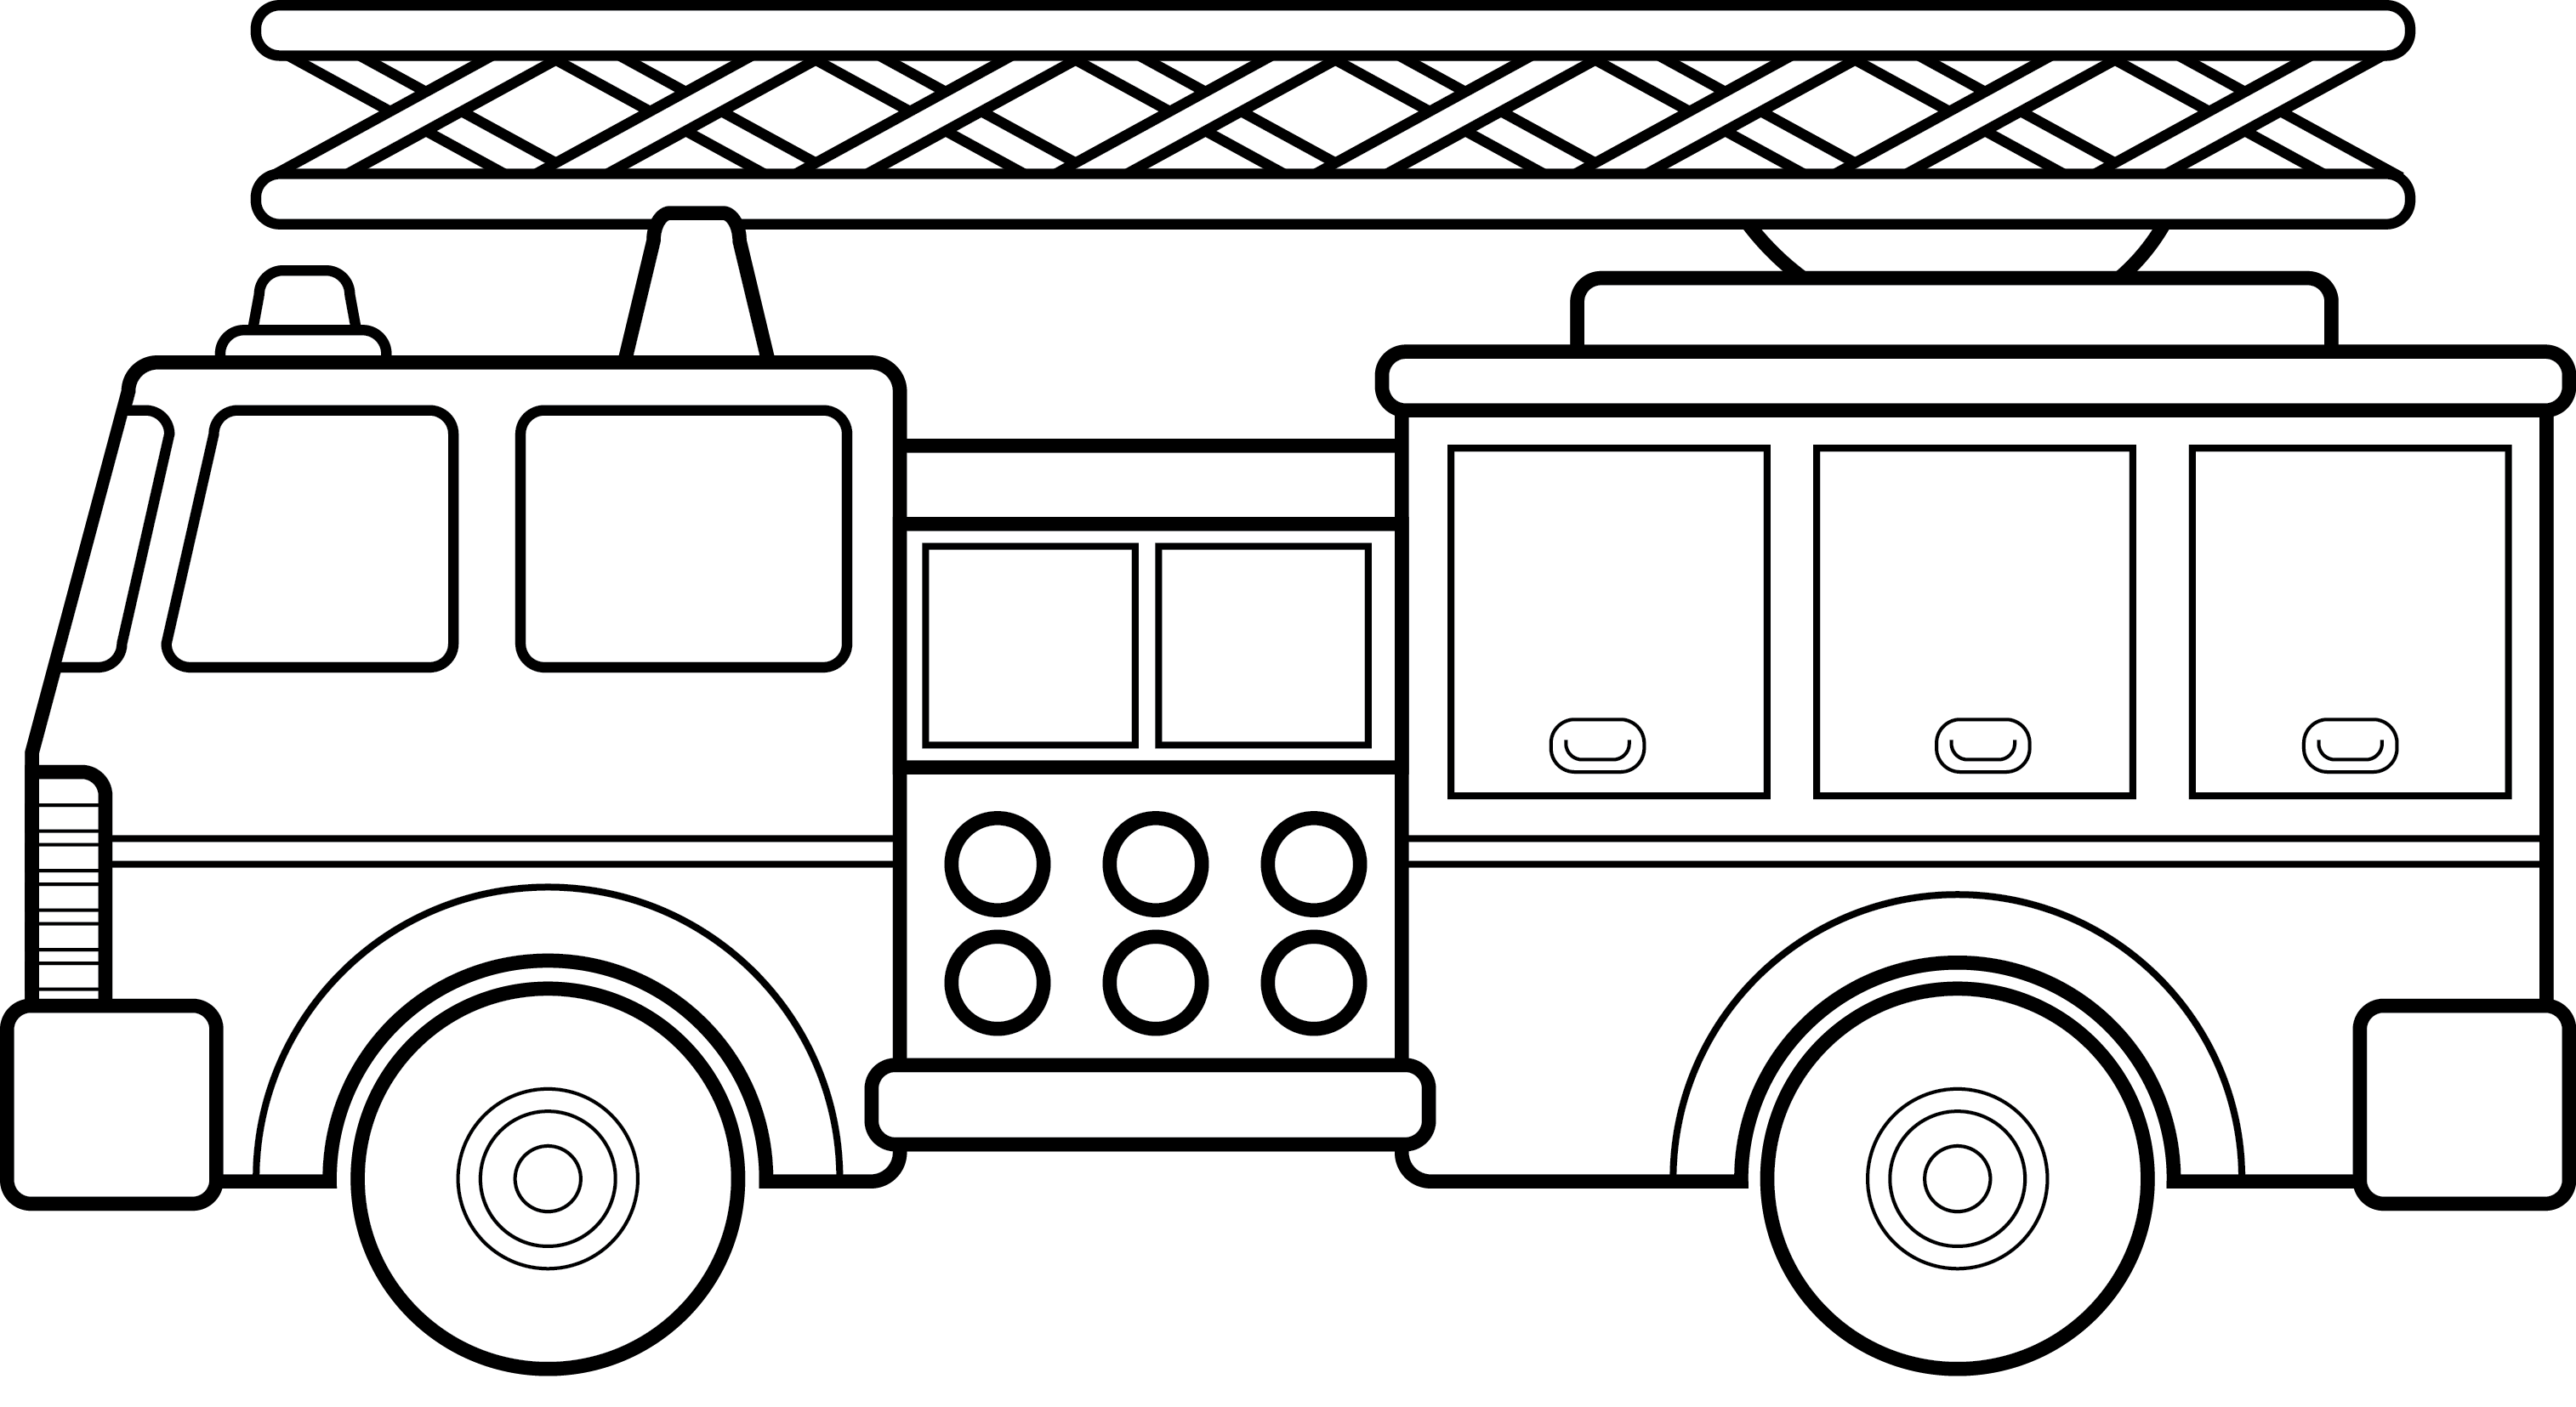 coloring truck clipart black and white toy truck clipart black and white clipart panda free coloring white clipart and truck black